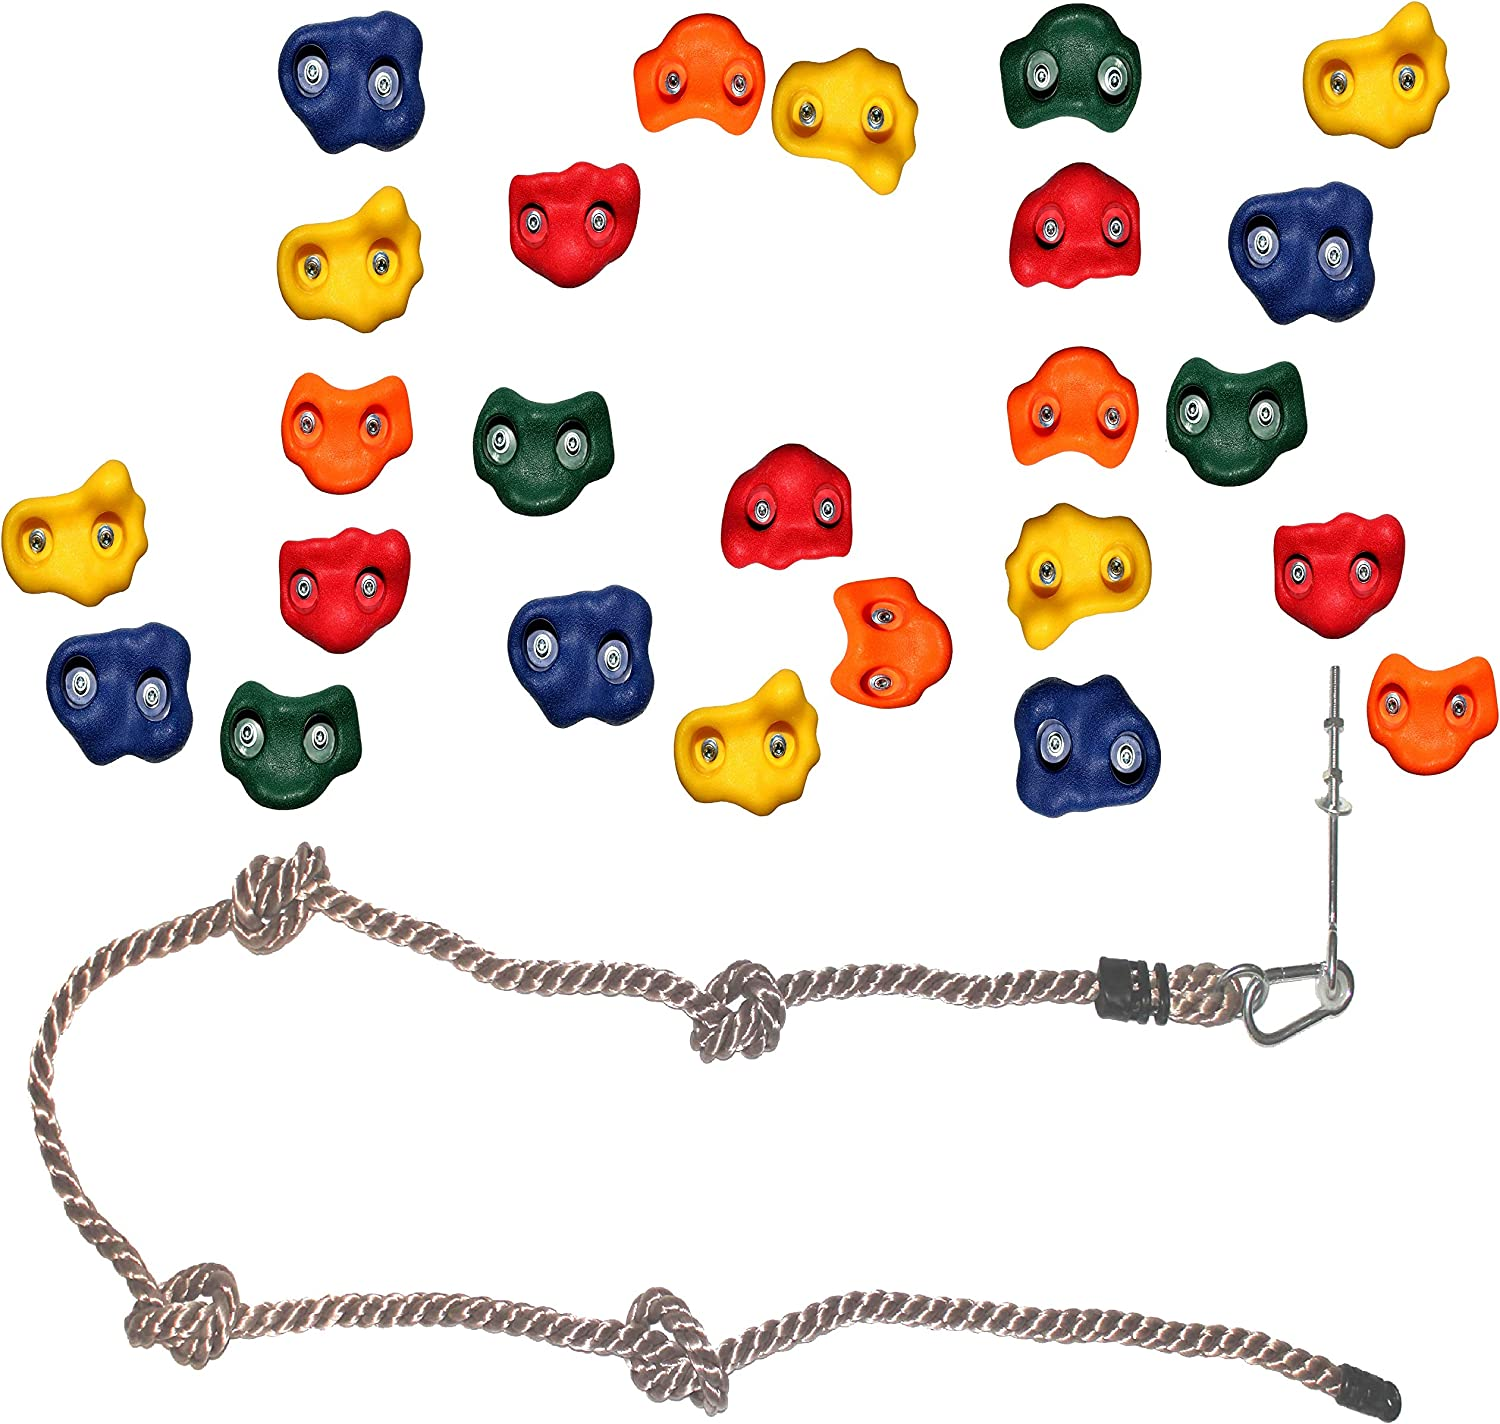 Jungle Gym Kingdom DIY 25 Rock Climbing Hand Holds with Robust 8 Foot Knotted Rope for Childrens Playground Wall Kids Indoor Outdoor Play Sets with Mounting Hardware